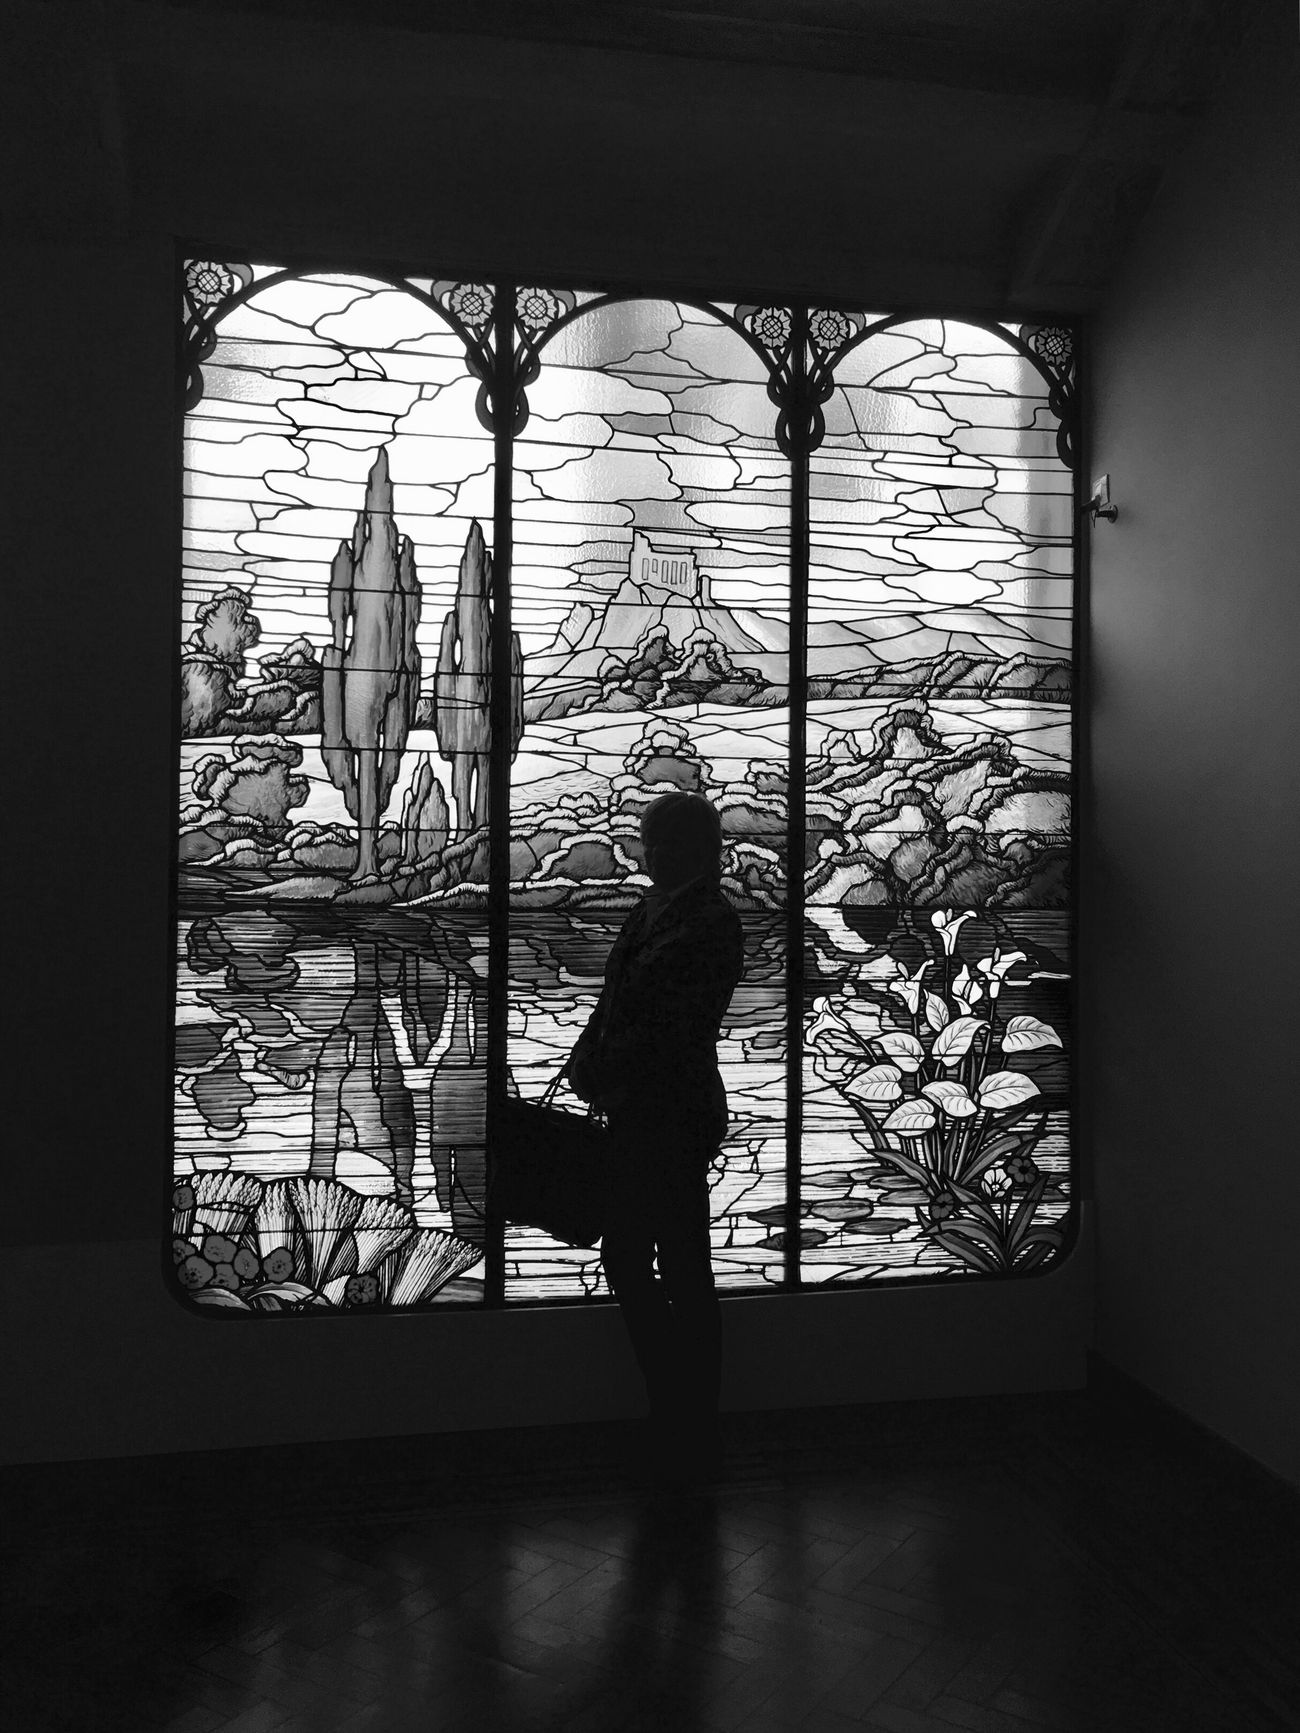 One Person Architecture EyeEm Gallery Silhouette Window Glass Art Glass EyeEm Best Shots - Black + White Black And White Blackandwhite Photography Blackandwhite Black & White Architecture_bw Bw_collection Streetphoto_bw IPhoneography Iphoneonly Eye4photography  EyeEm Bnw Built Structure Barcelona The City Light